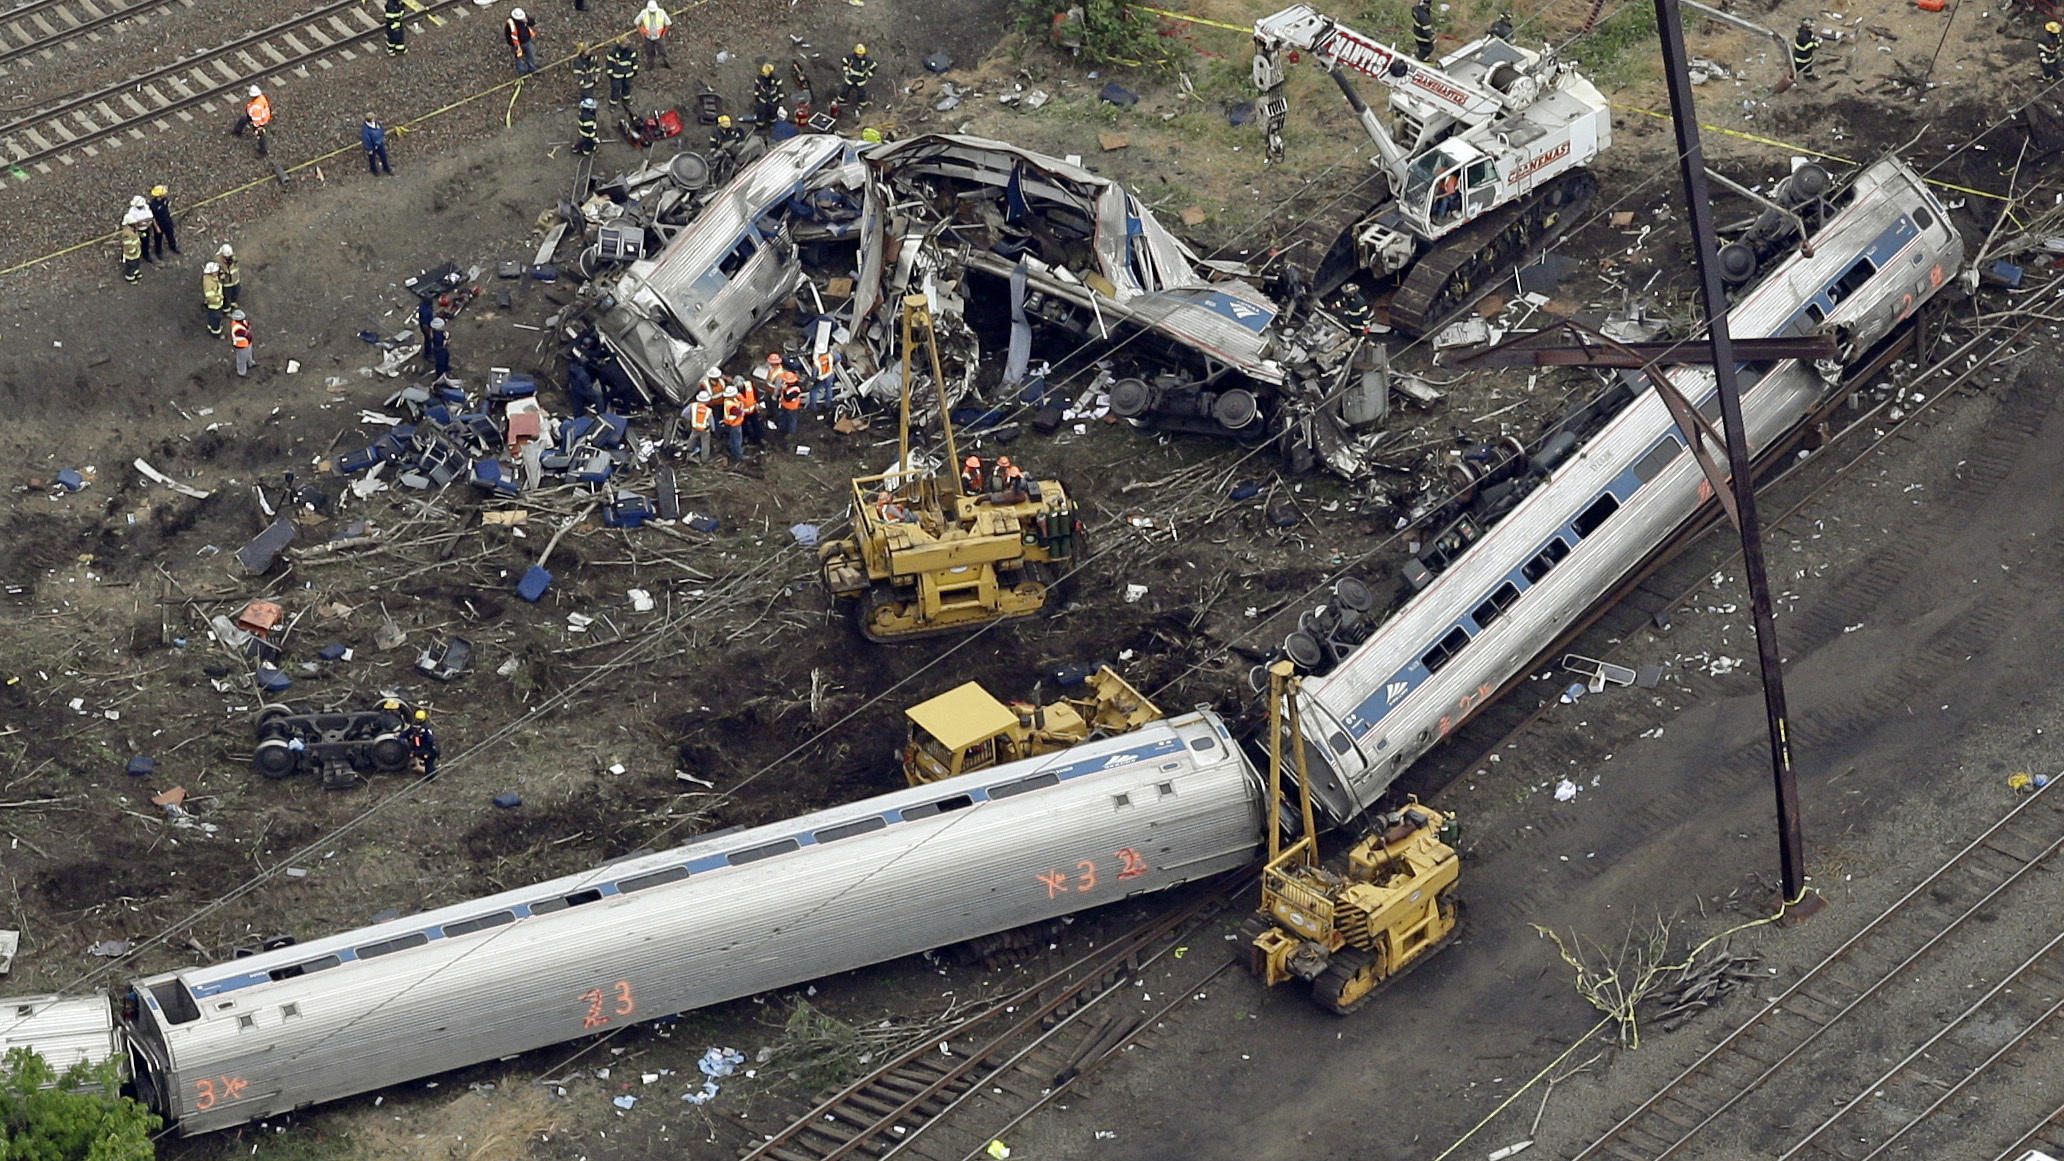 Judge Orders Prosecutors to Charge Driver in Amtrak Derailment